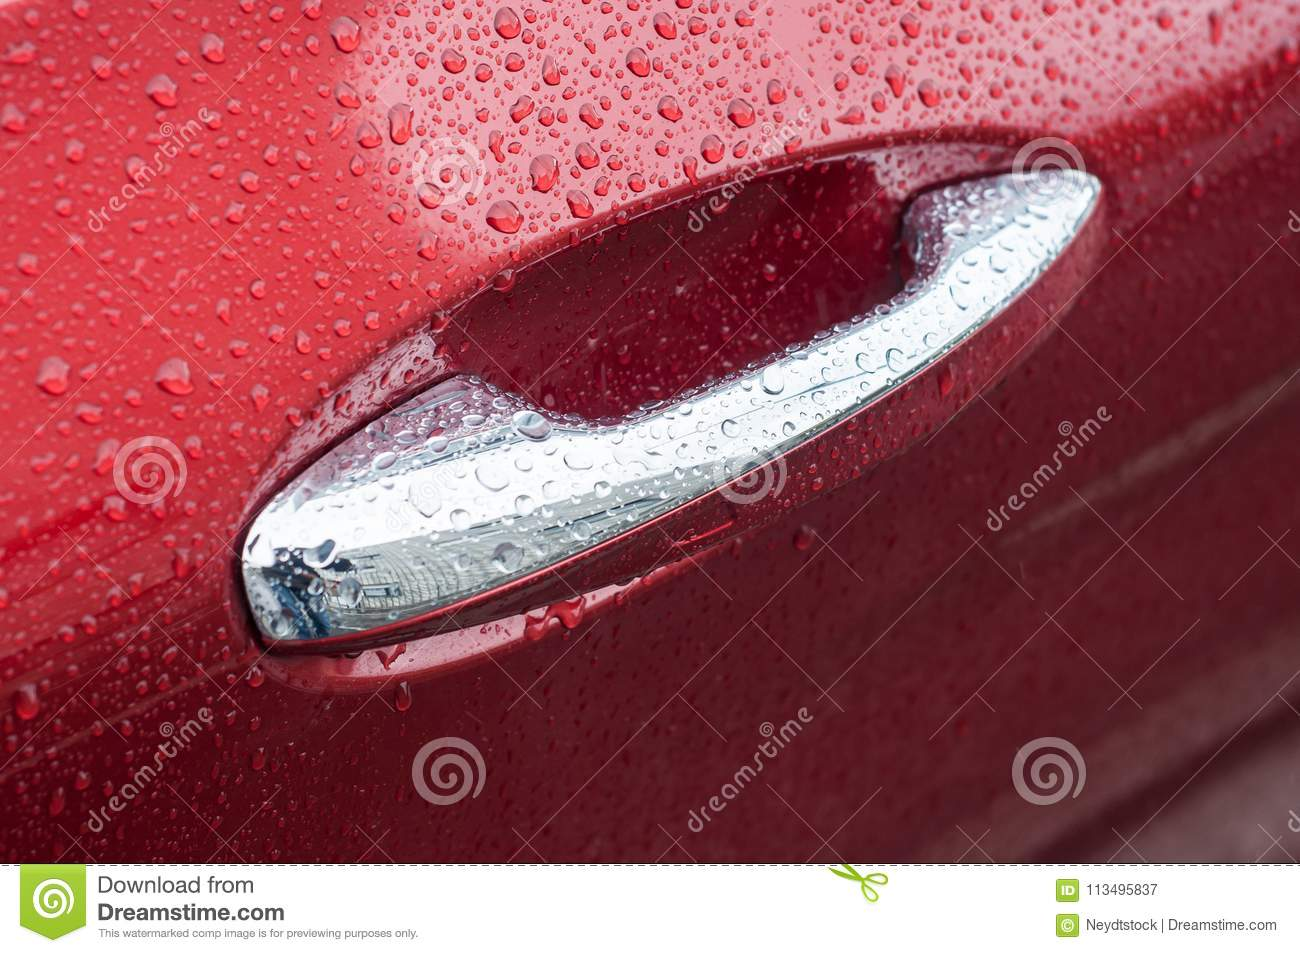 rain drops on chromed handle of red luxury car